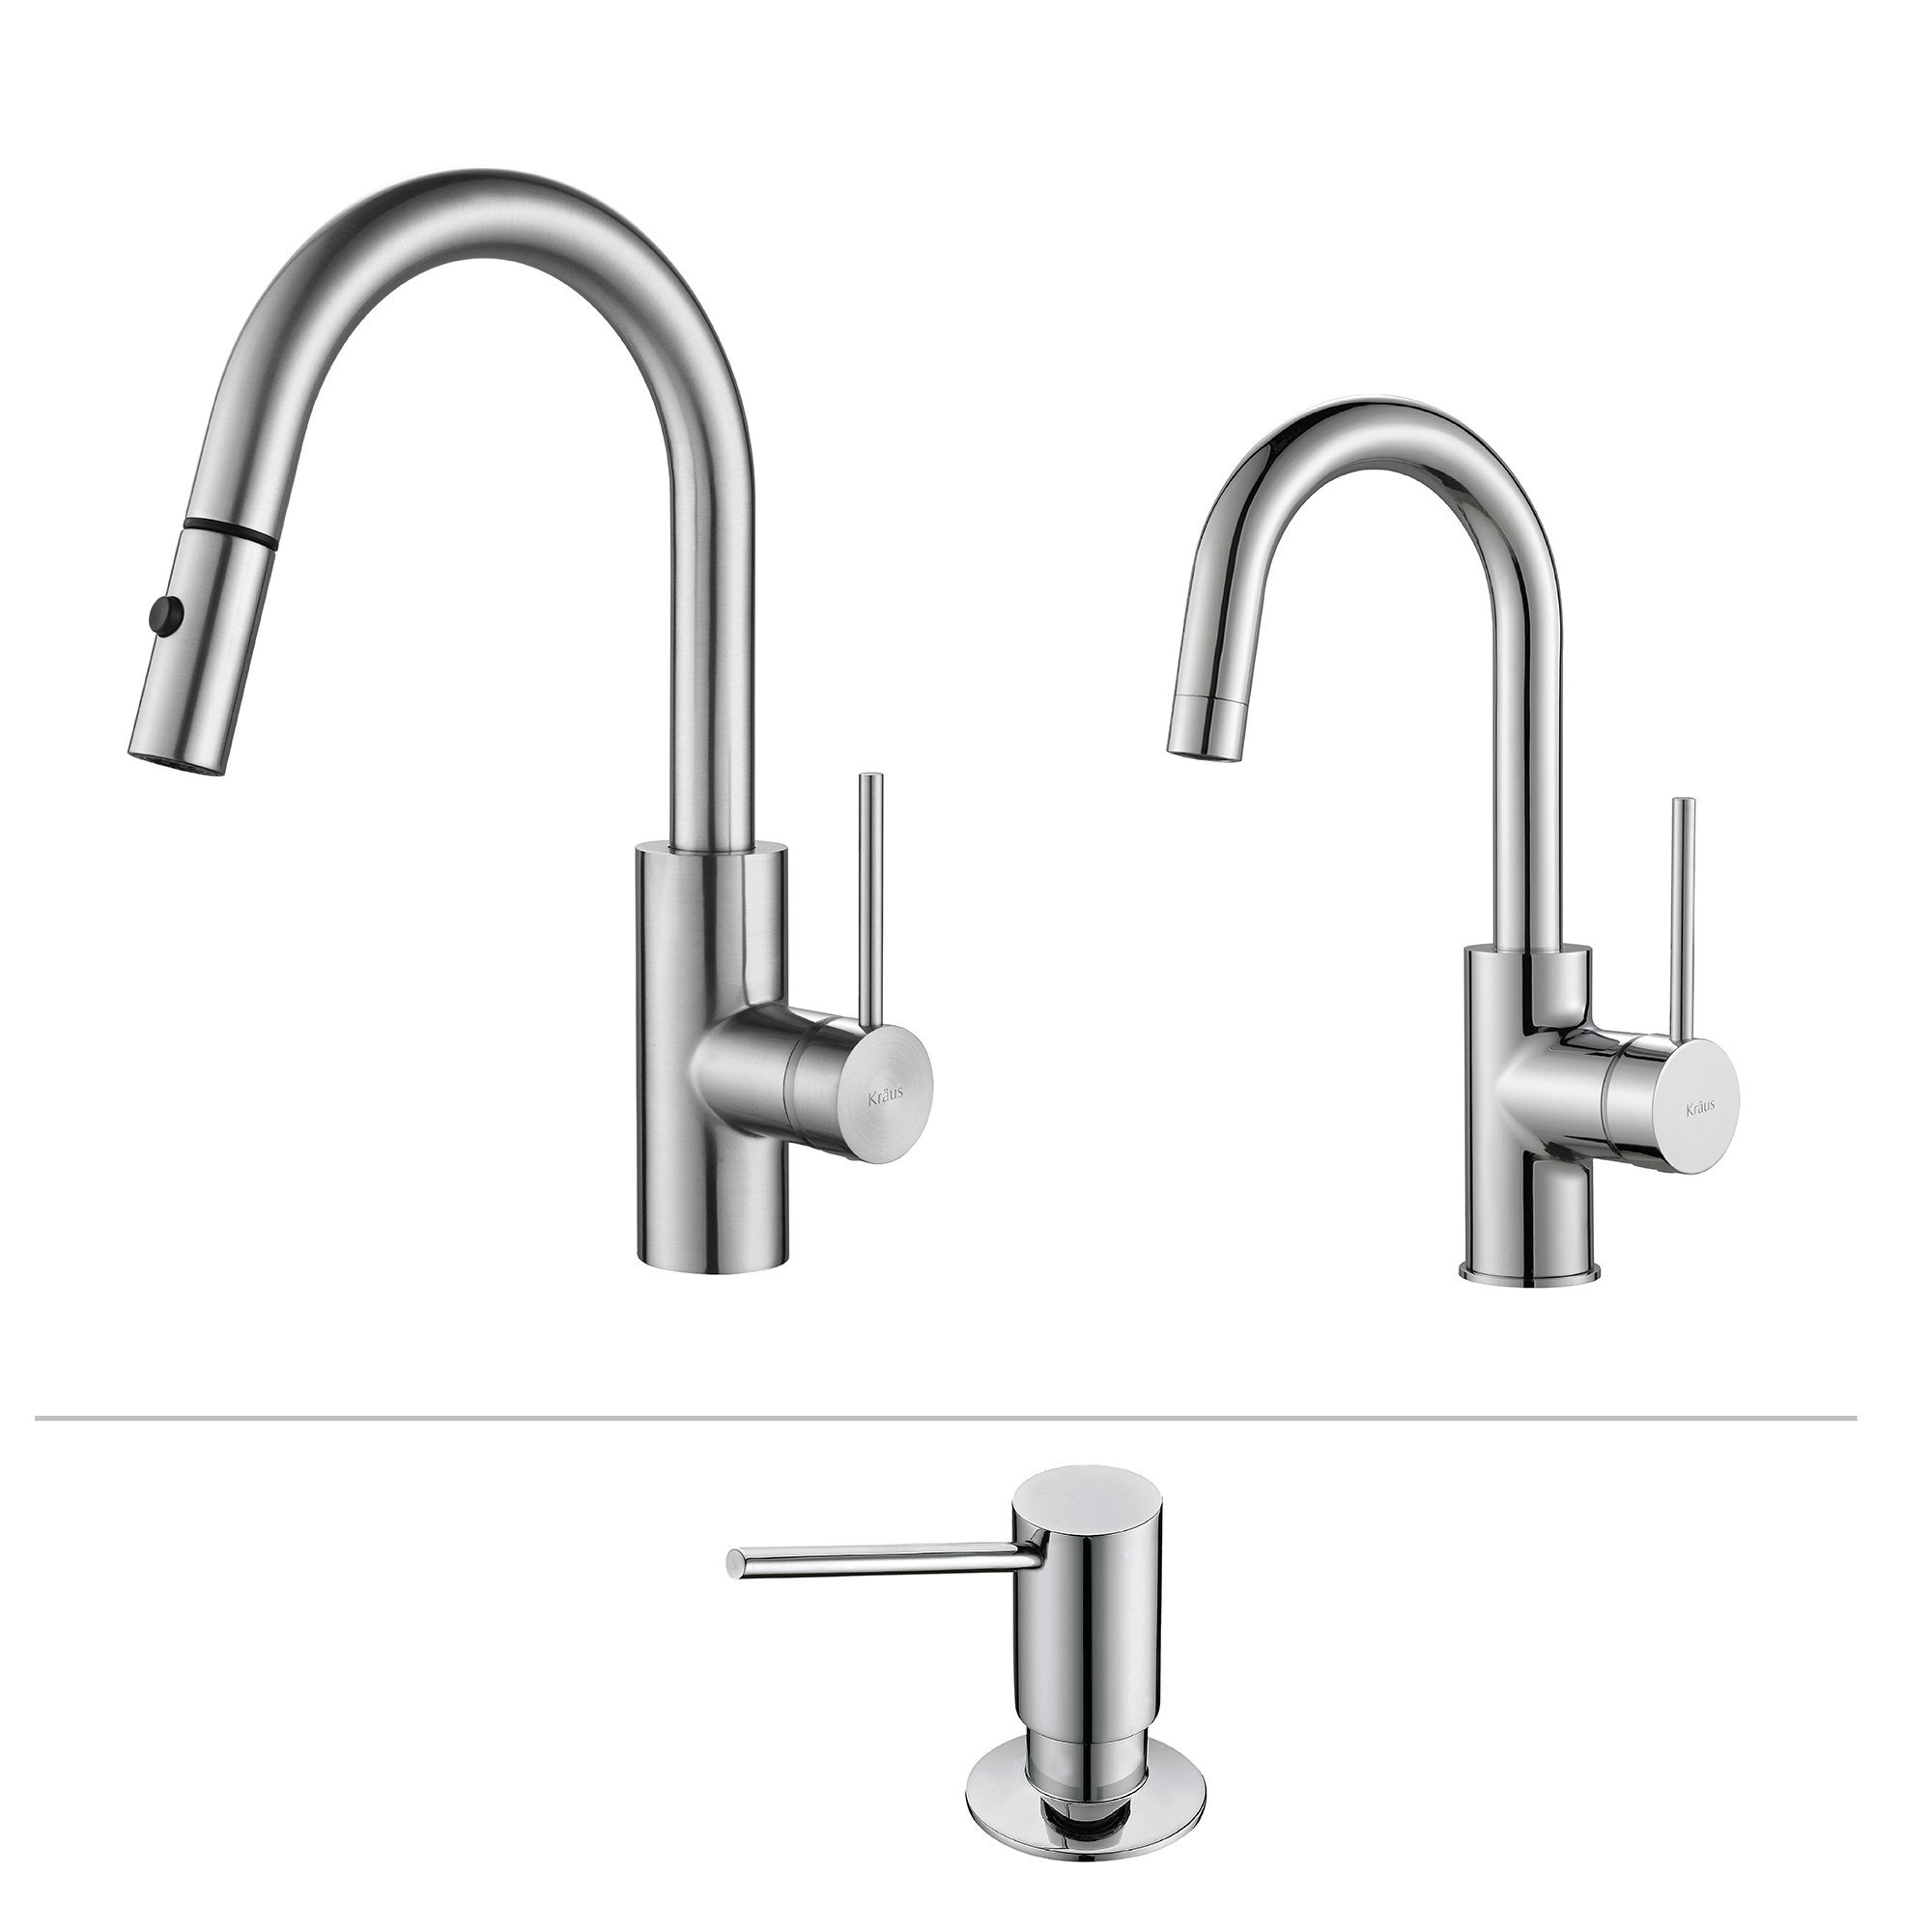 Kraus Kpf 2620 2600 41ch Oletto Pull Down Kitchen Faucet Set With